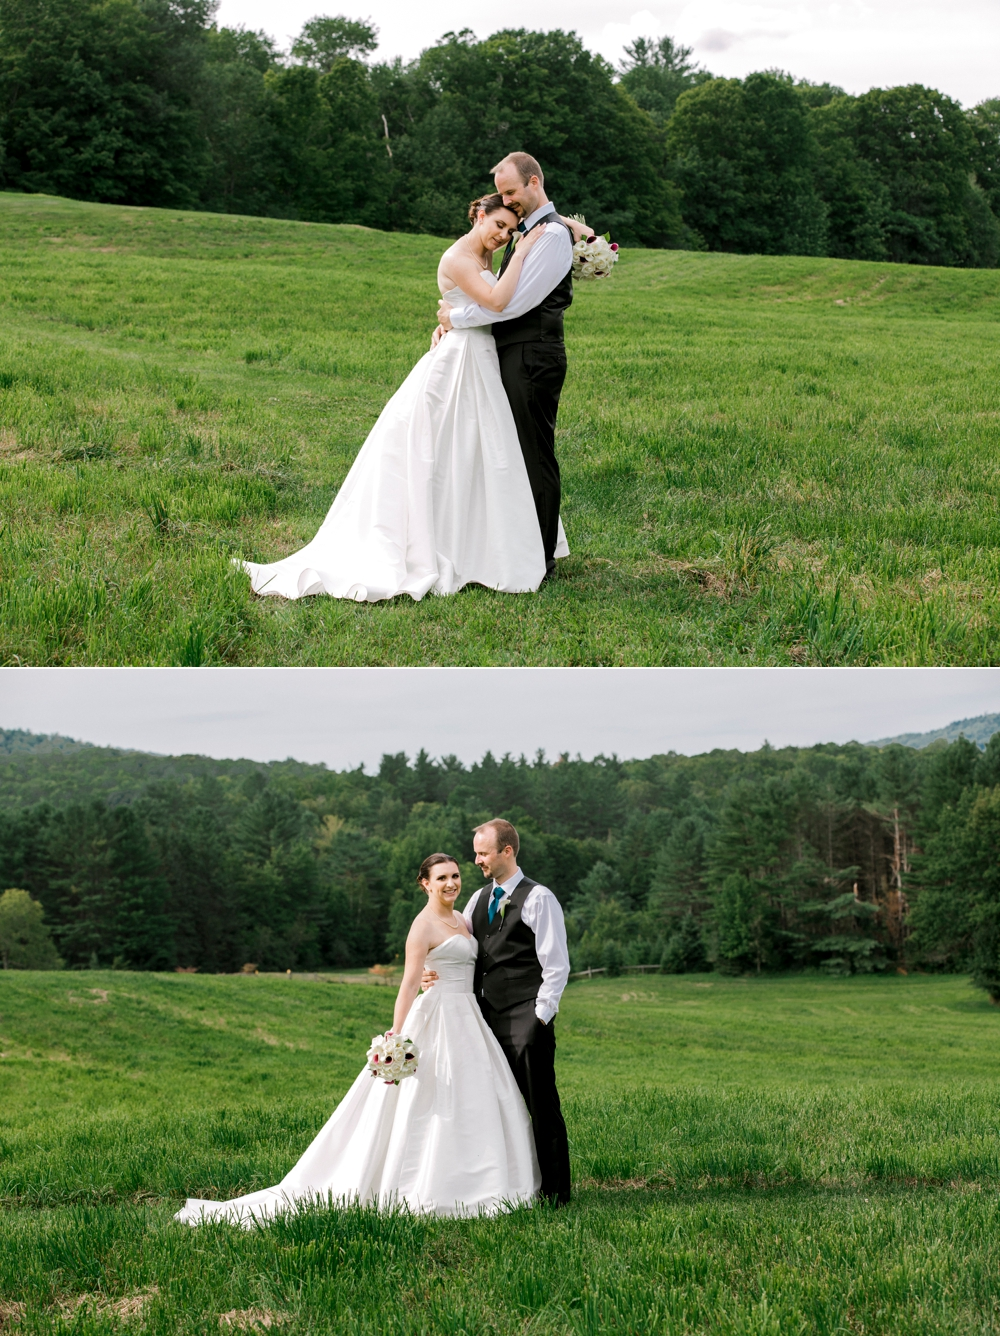 SomerbyJonesPhotography__VermontWedding_VTWedding_BackyardVermontWedding_0023.jpg